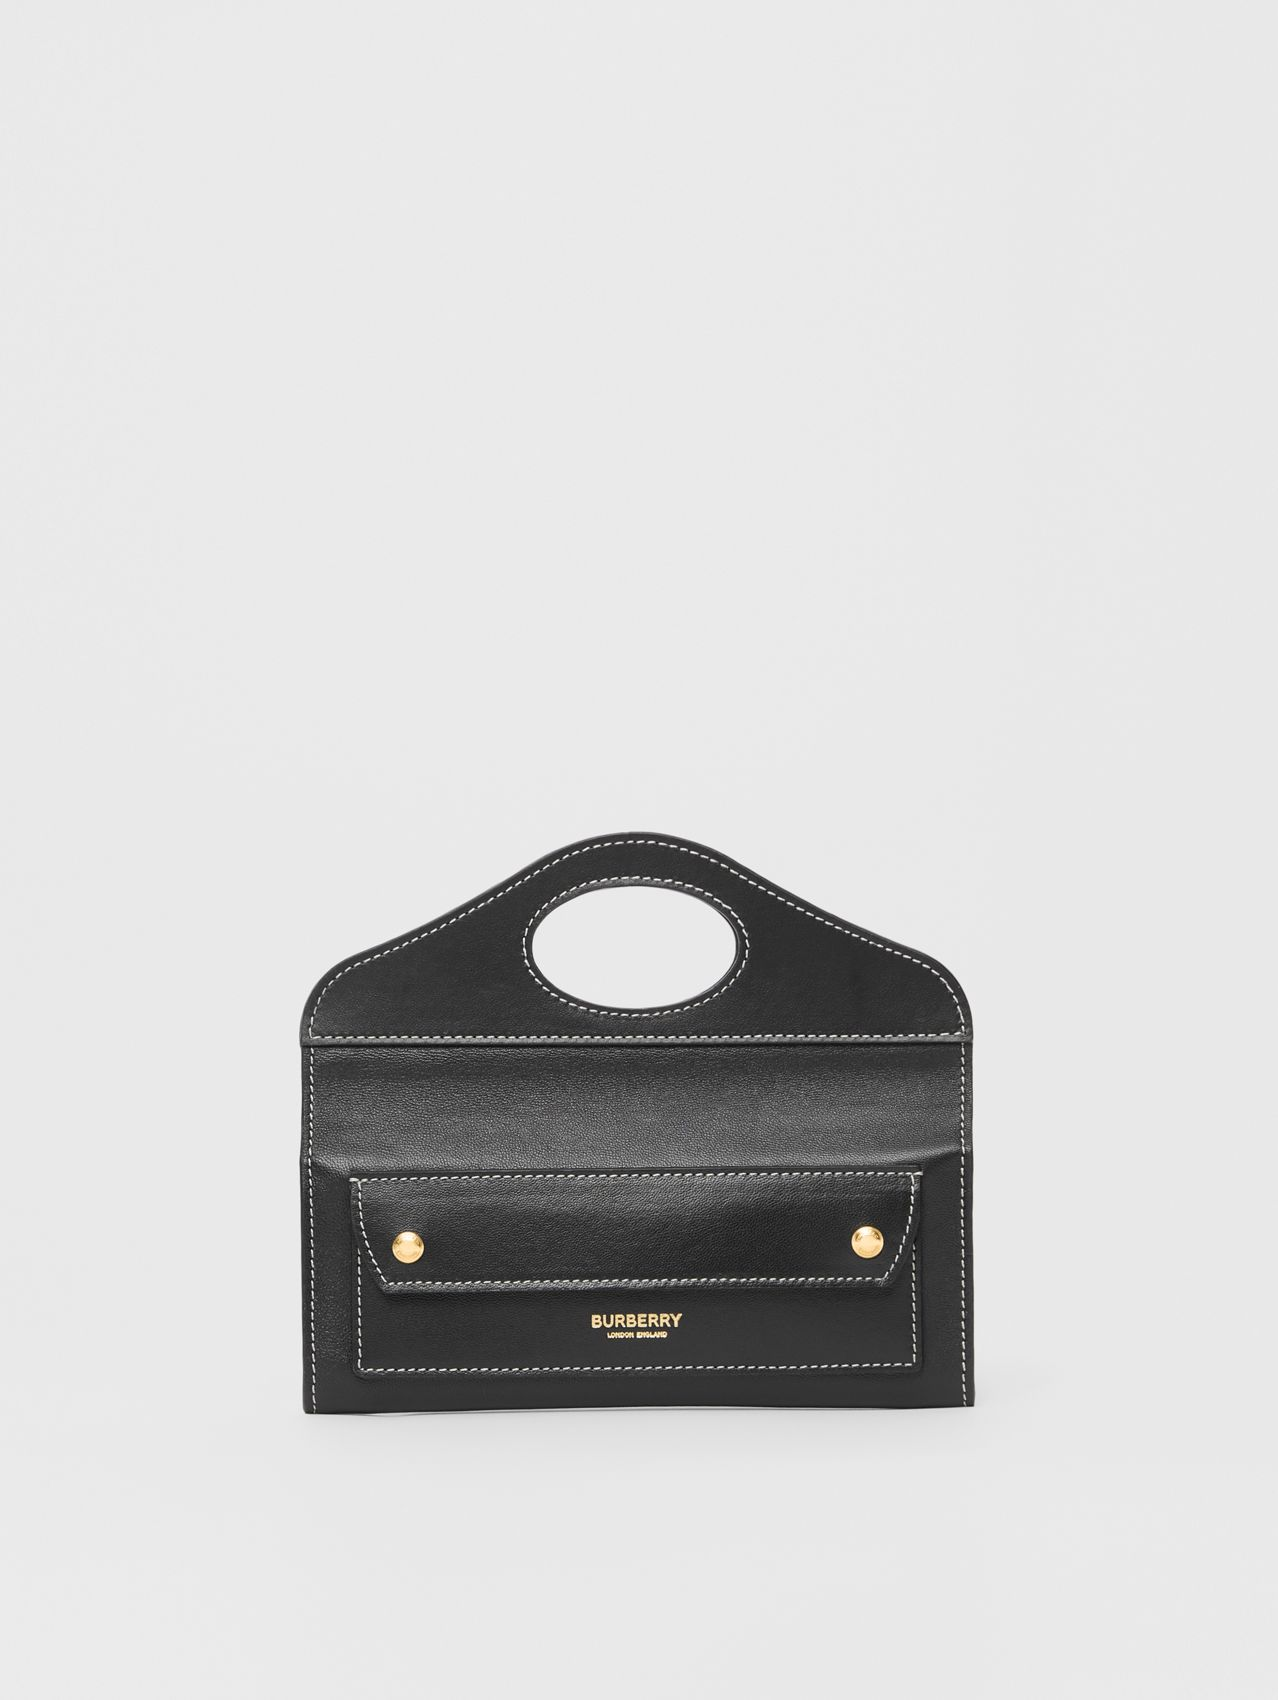 Mini Topstitched Lambskin Pocket Clutch in Black